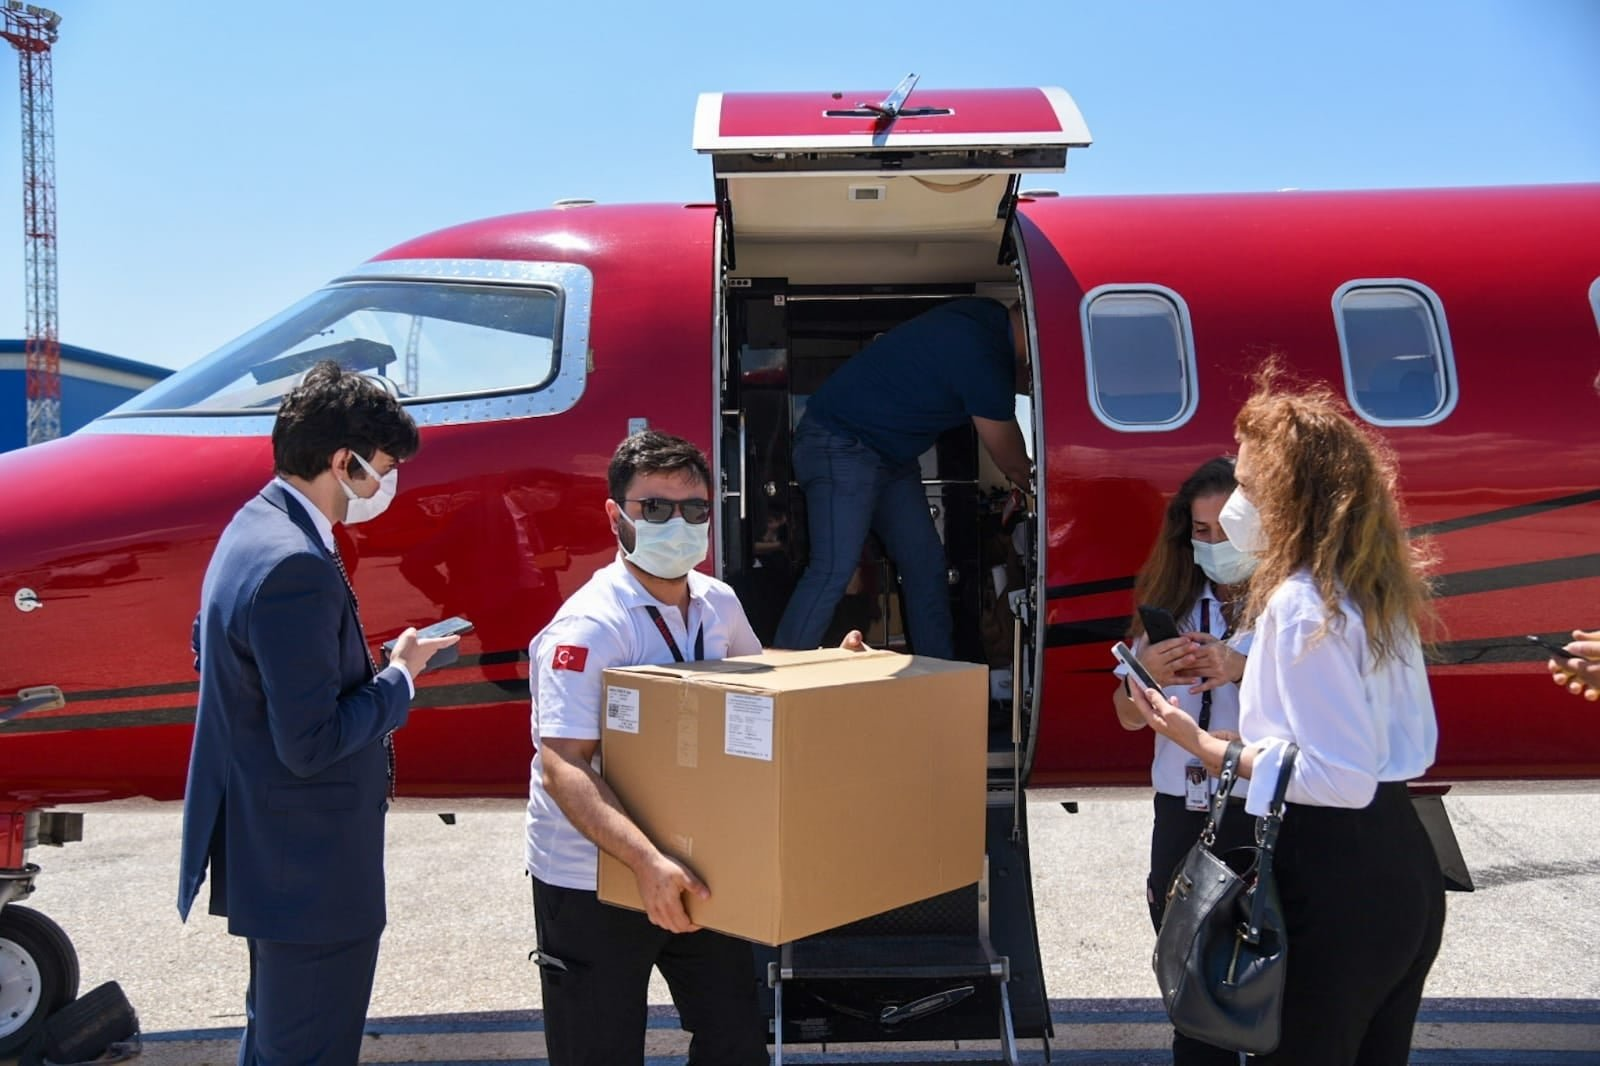 People unload boxes of vaccines from an airplane in an unknown location in North Macedonia in a photo shared by the country's Health Minister on his Facebook account, North Macedonia, June 9, 2021. (AA PHOTO)